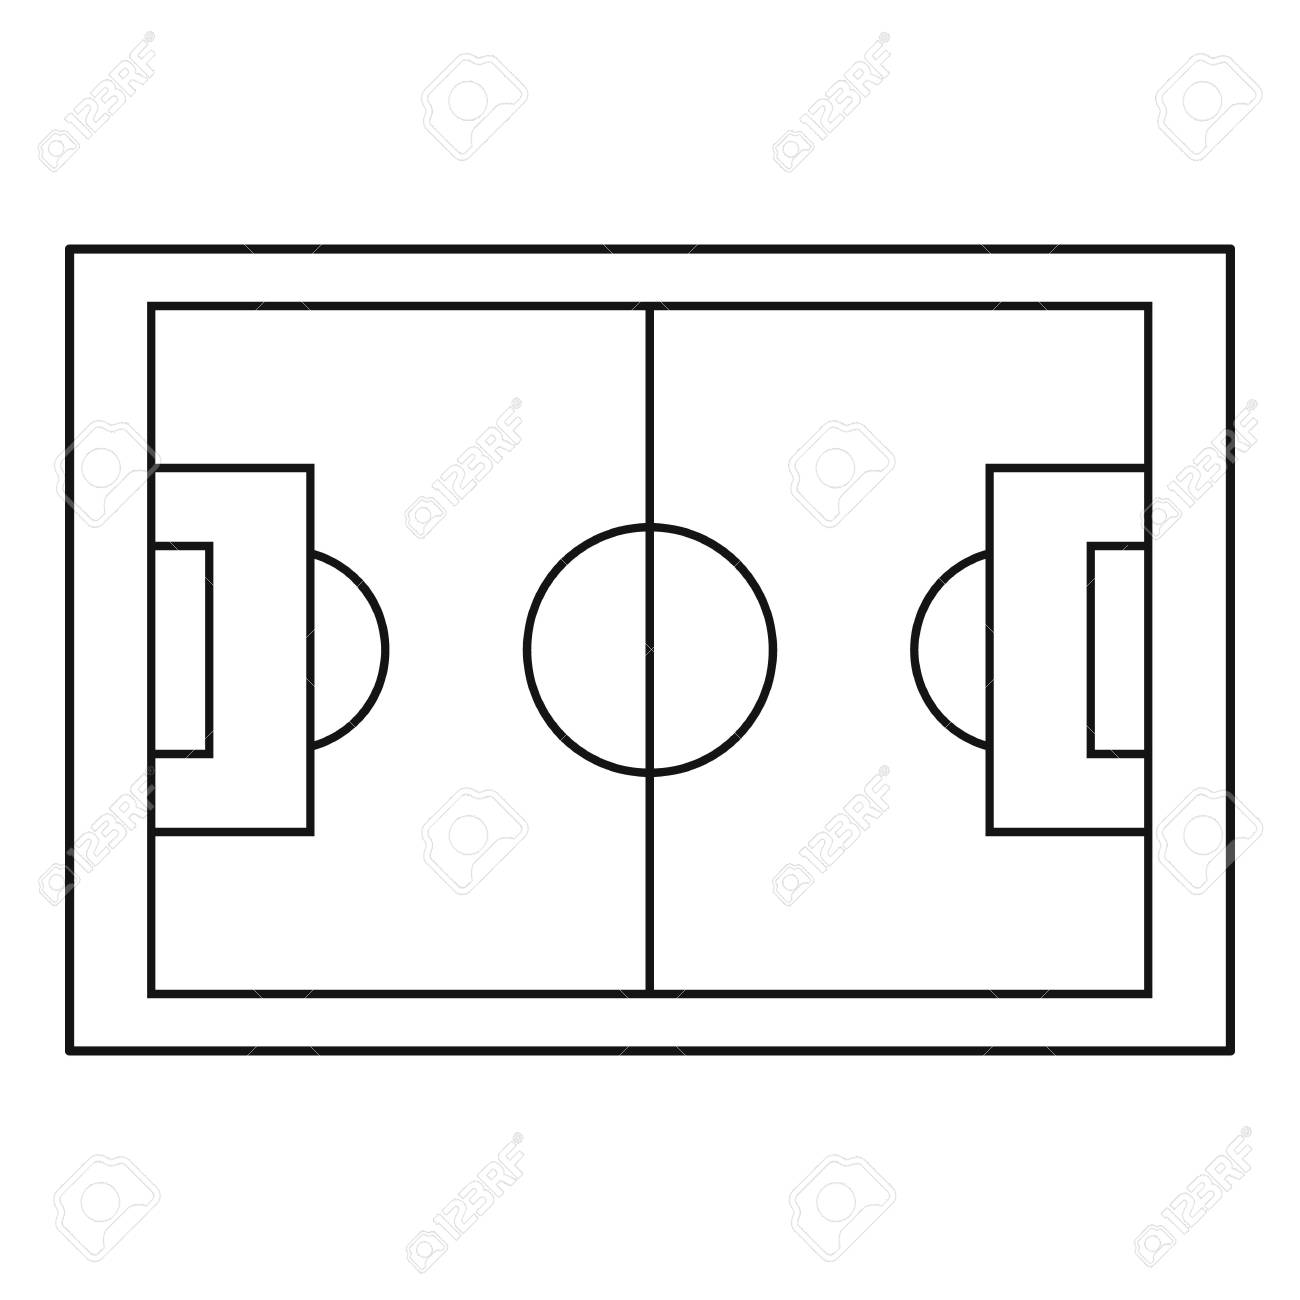 1300x1300 Pitch Layout Football Blueprint Design Evacuation Plan Example